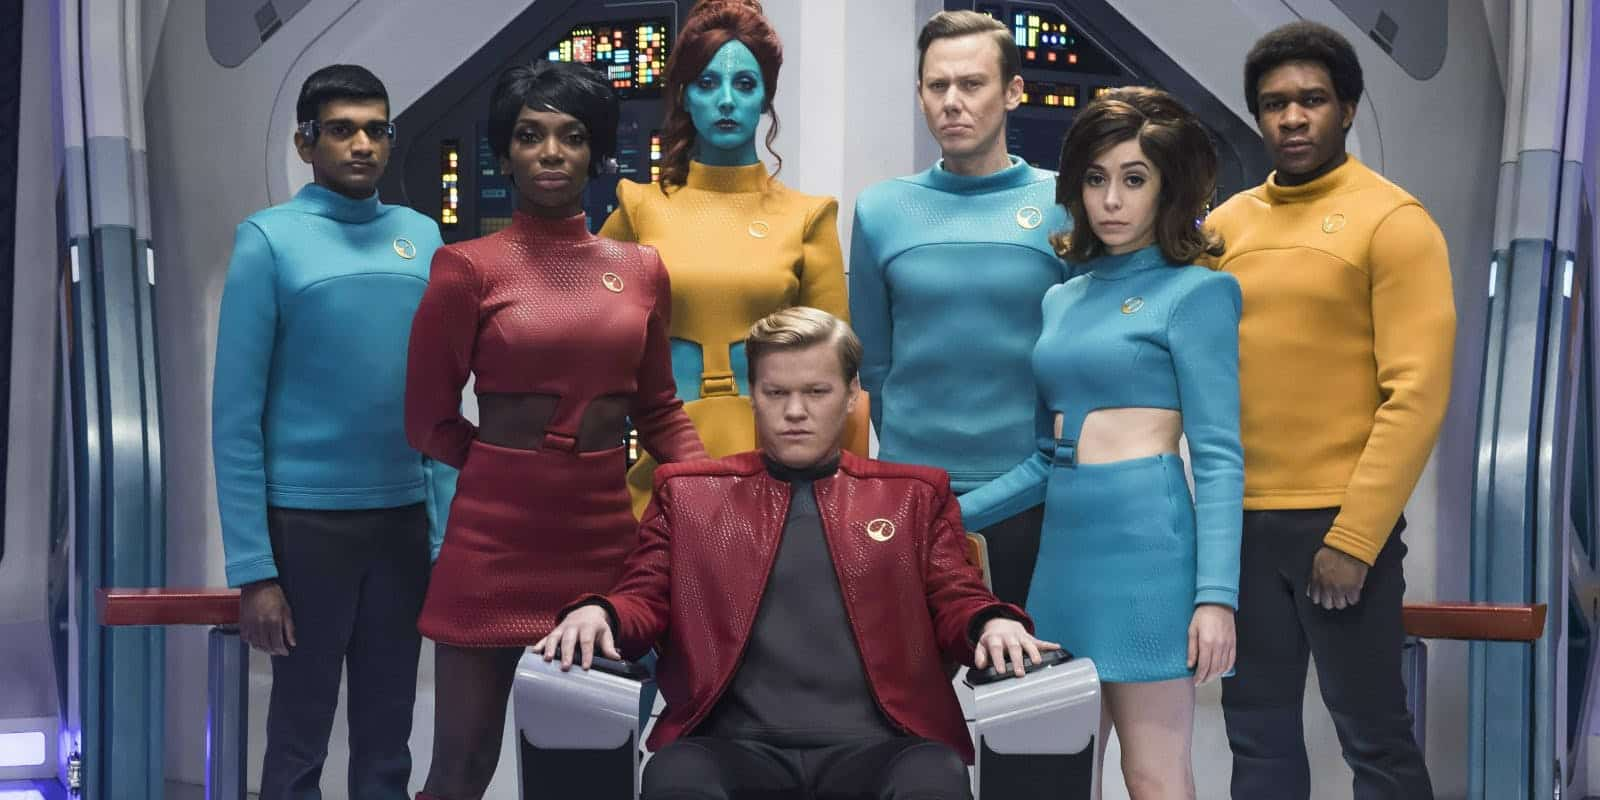 Black Mirror USS Introverted Nerd vs. Controlling Alpha